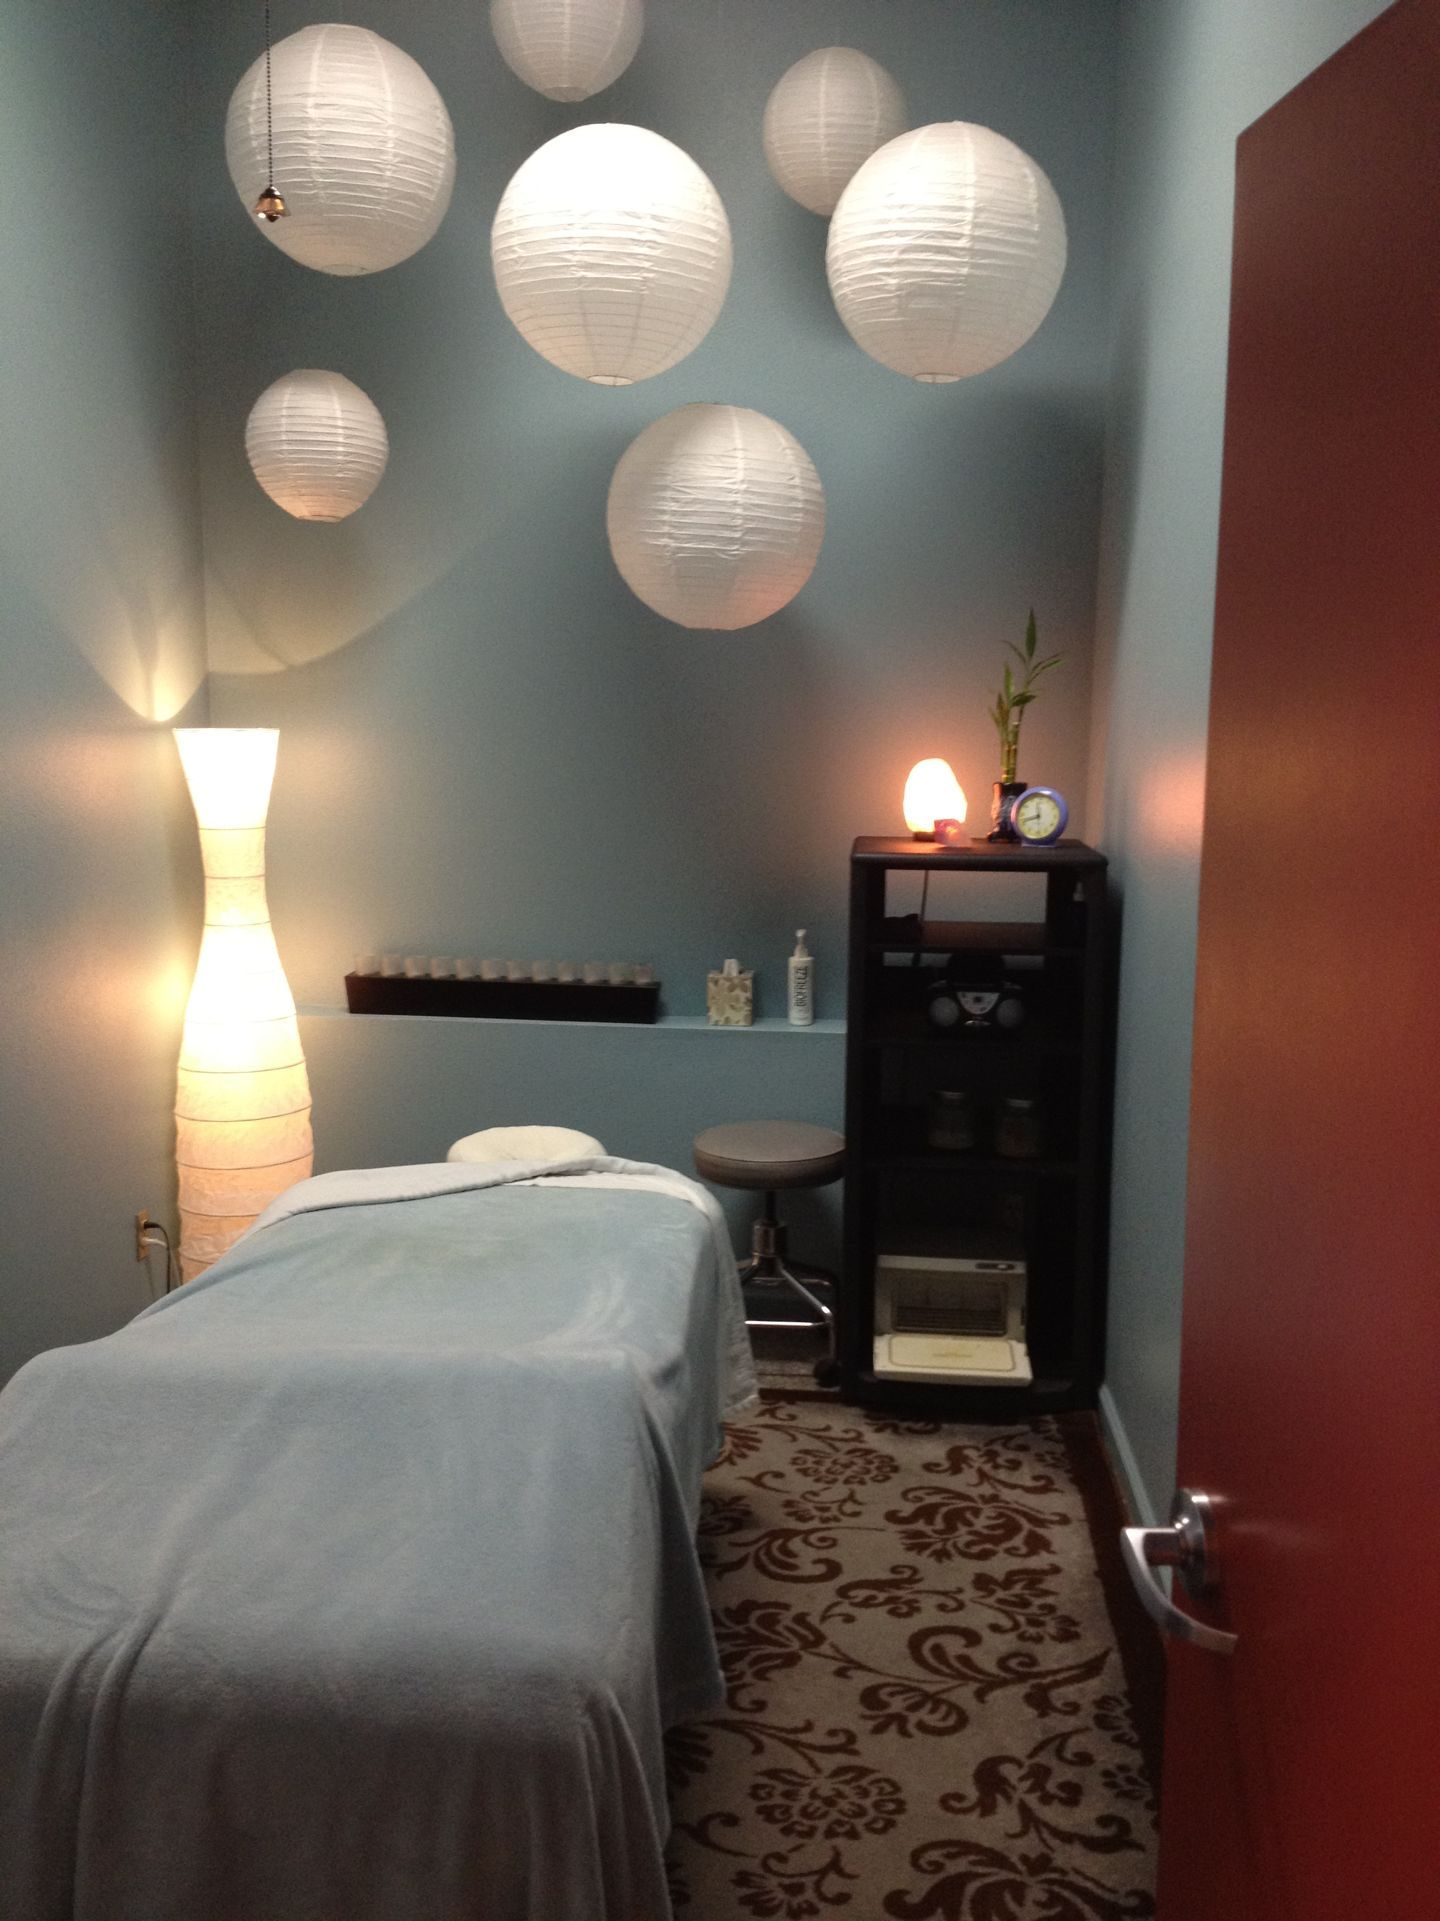 Spa Room Design Ideas Part - 25: Massage Room Ideas - The Spa At Pacific Wellness Massage Therapy Room